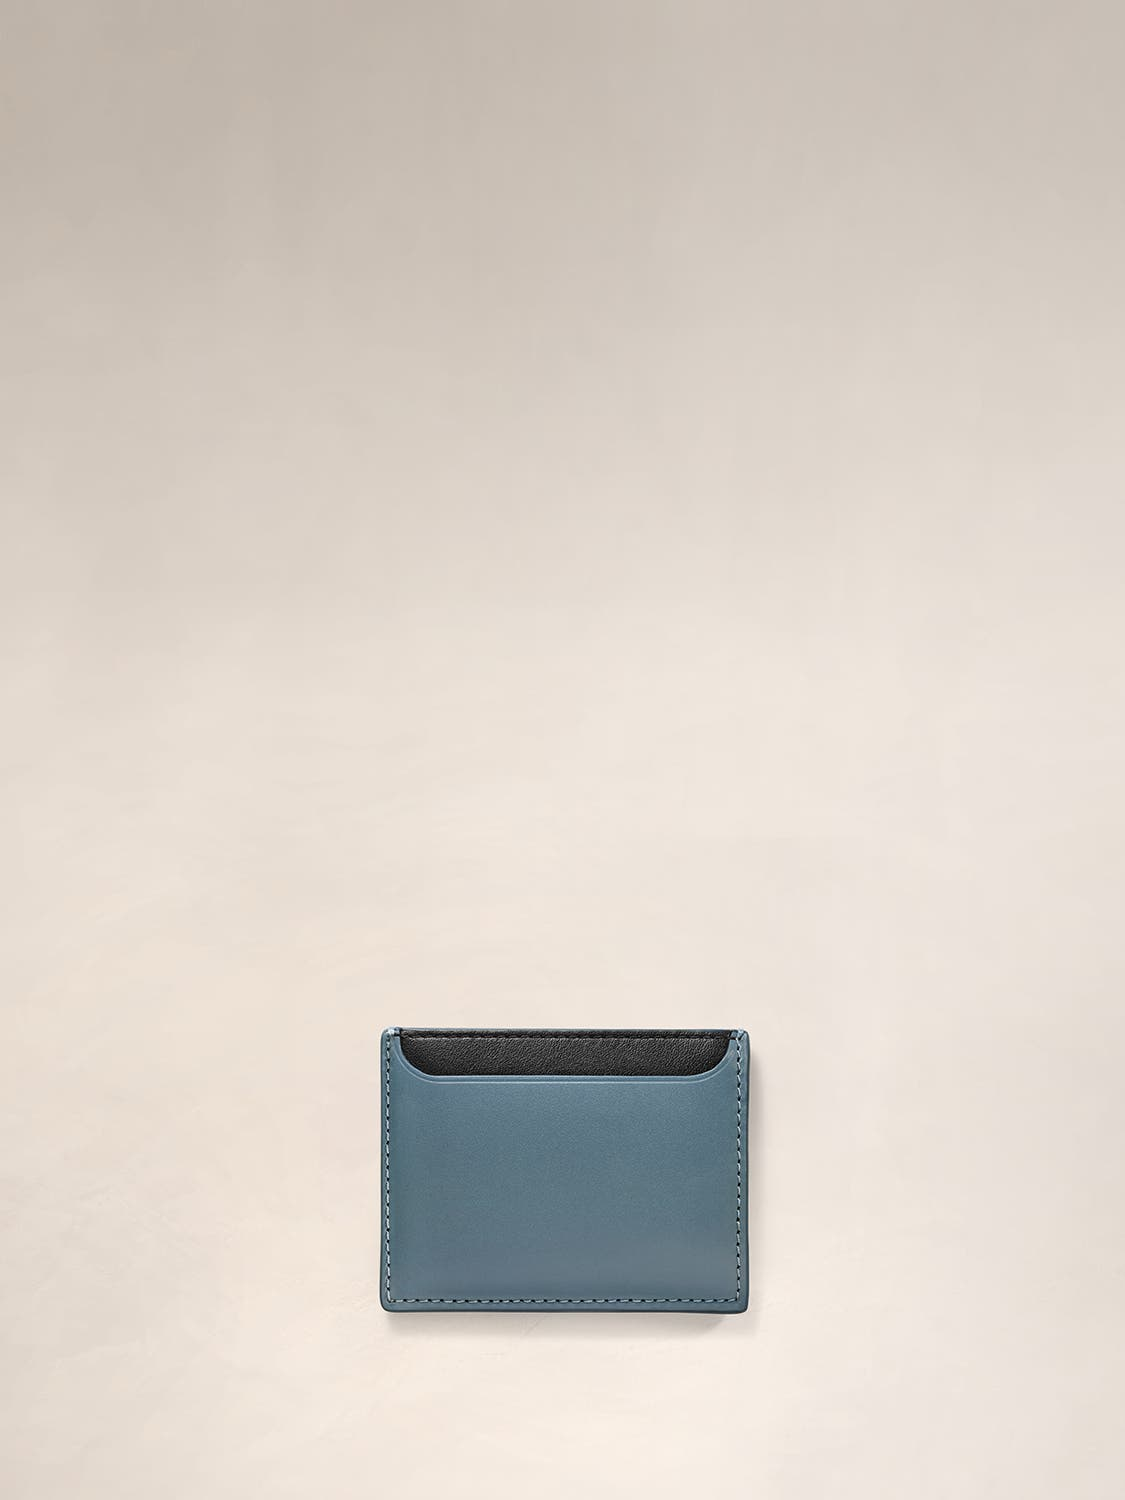 Front view of a slim card holder.